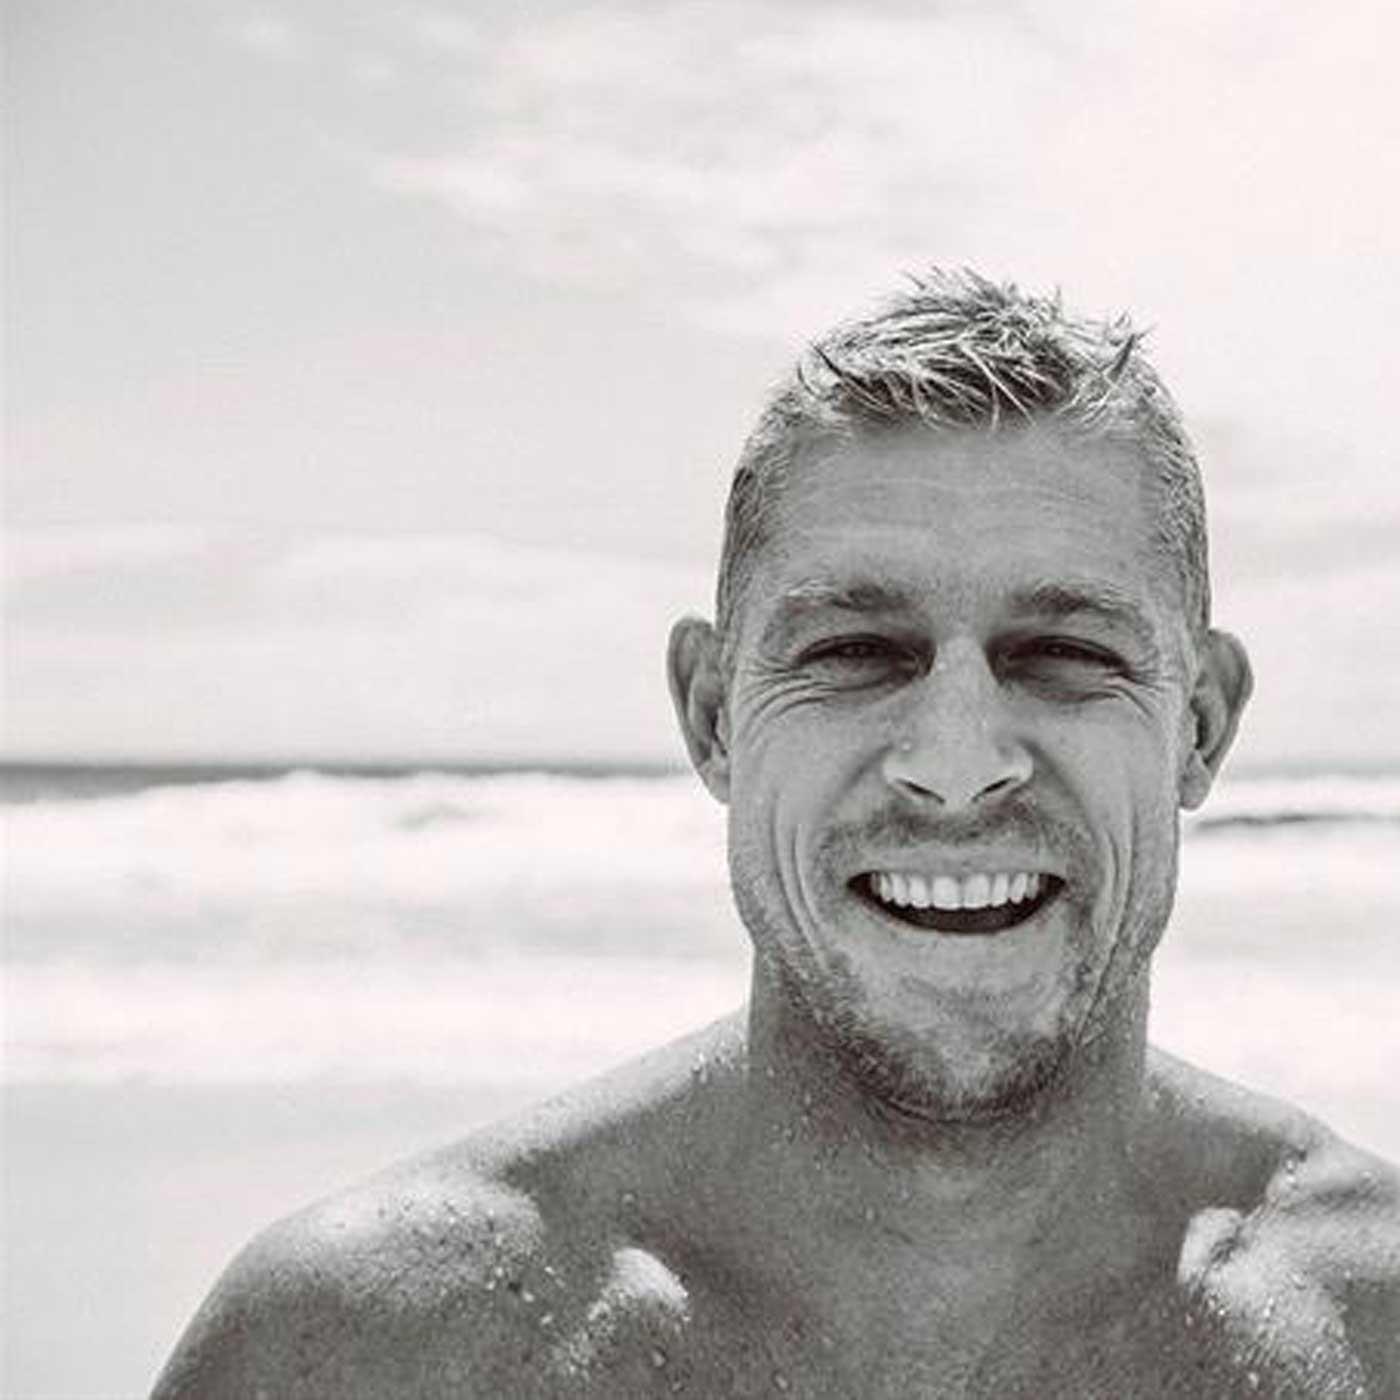 57 - Mick Fanning: The Best Of Us